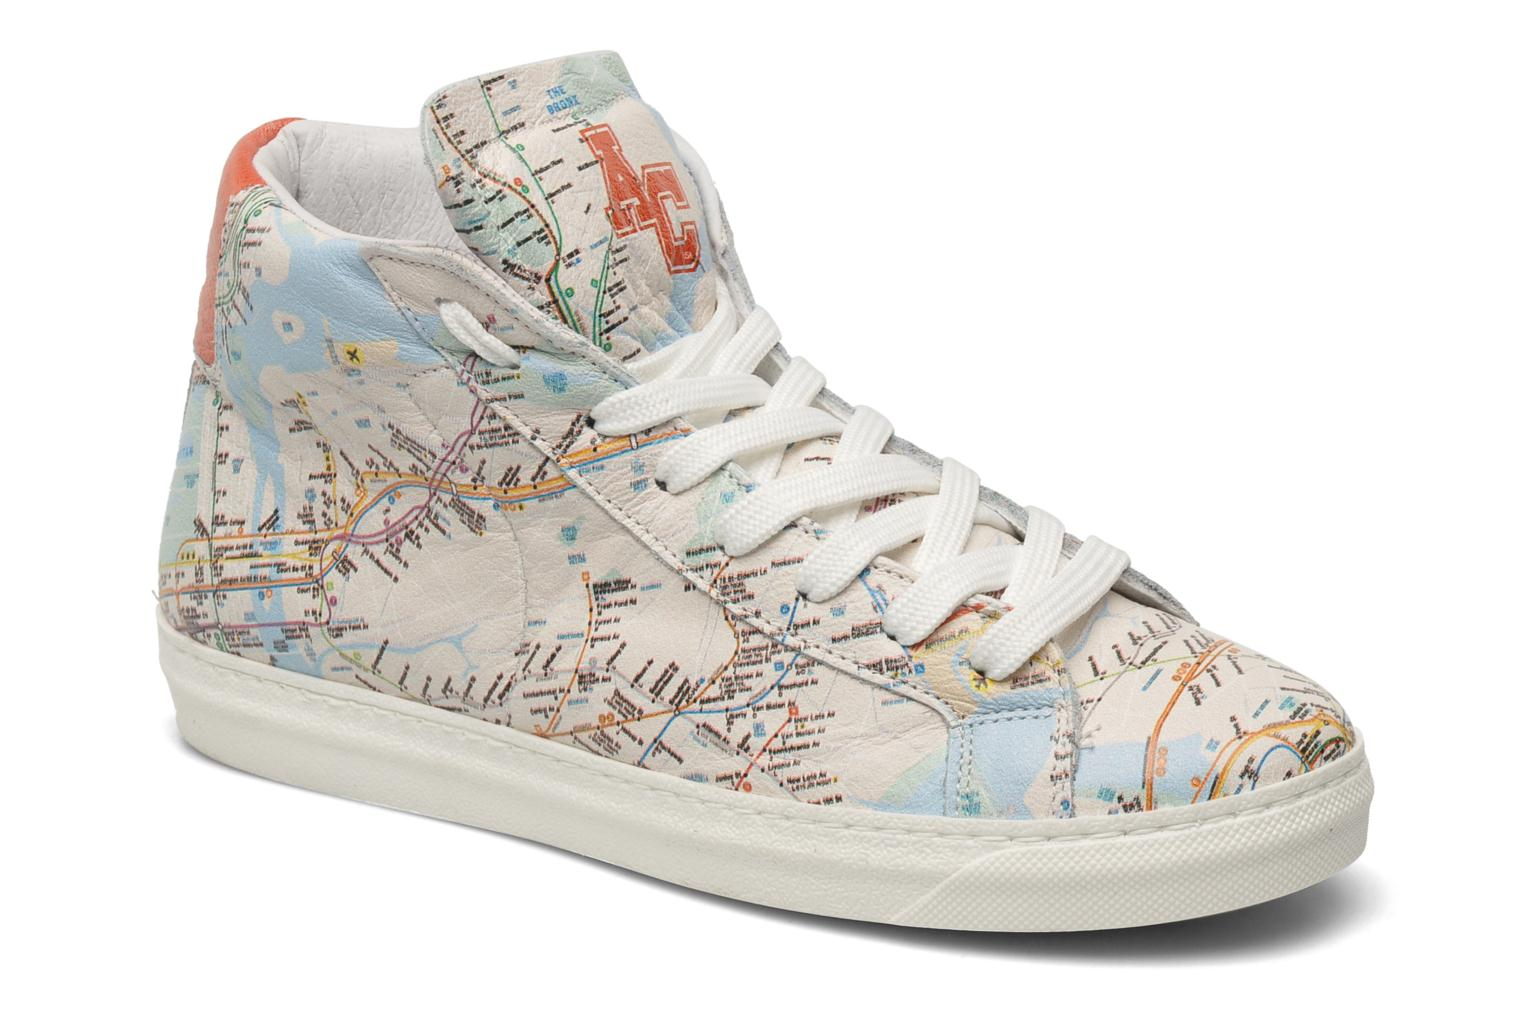 Sneakers Urban style m by American College